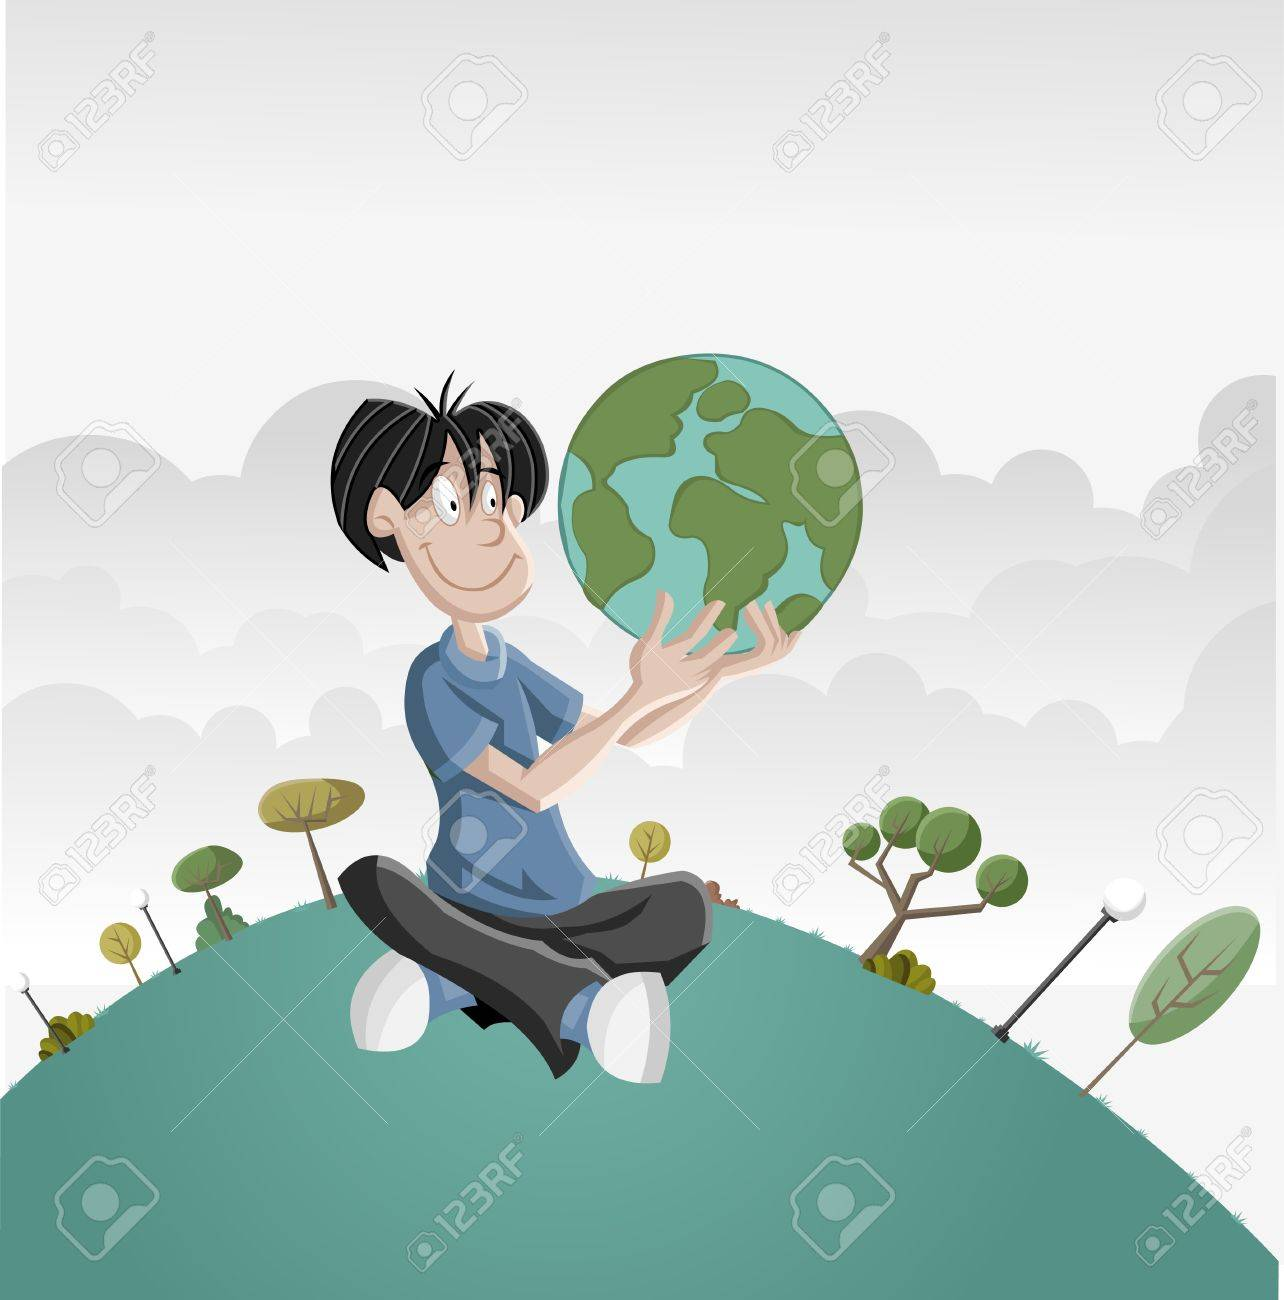 Cartoon boy holding earth globe Stock Vector - 16375178